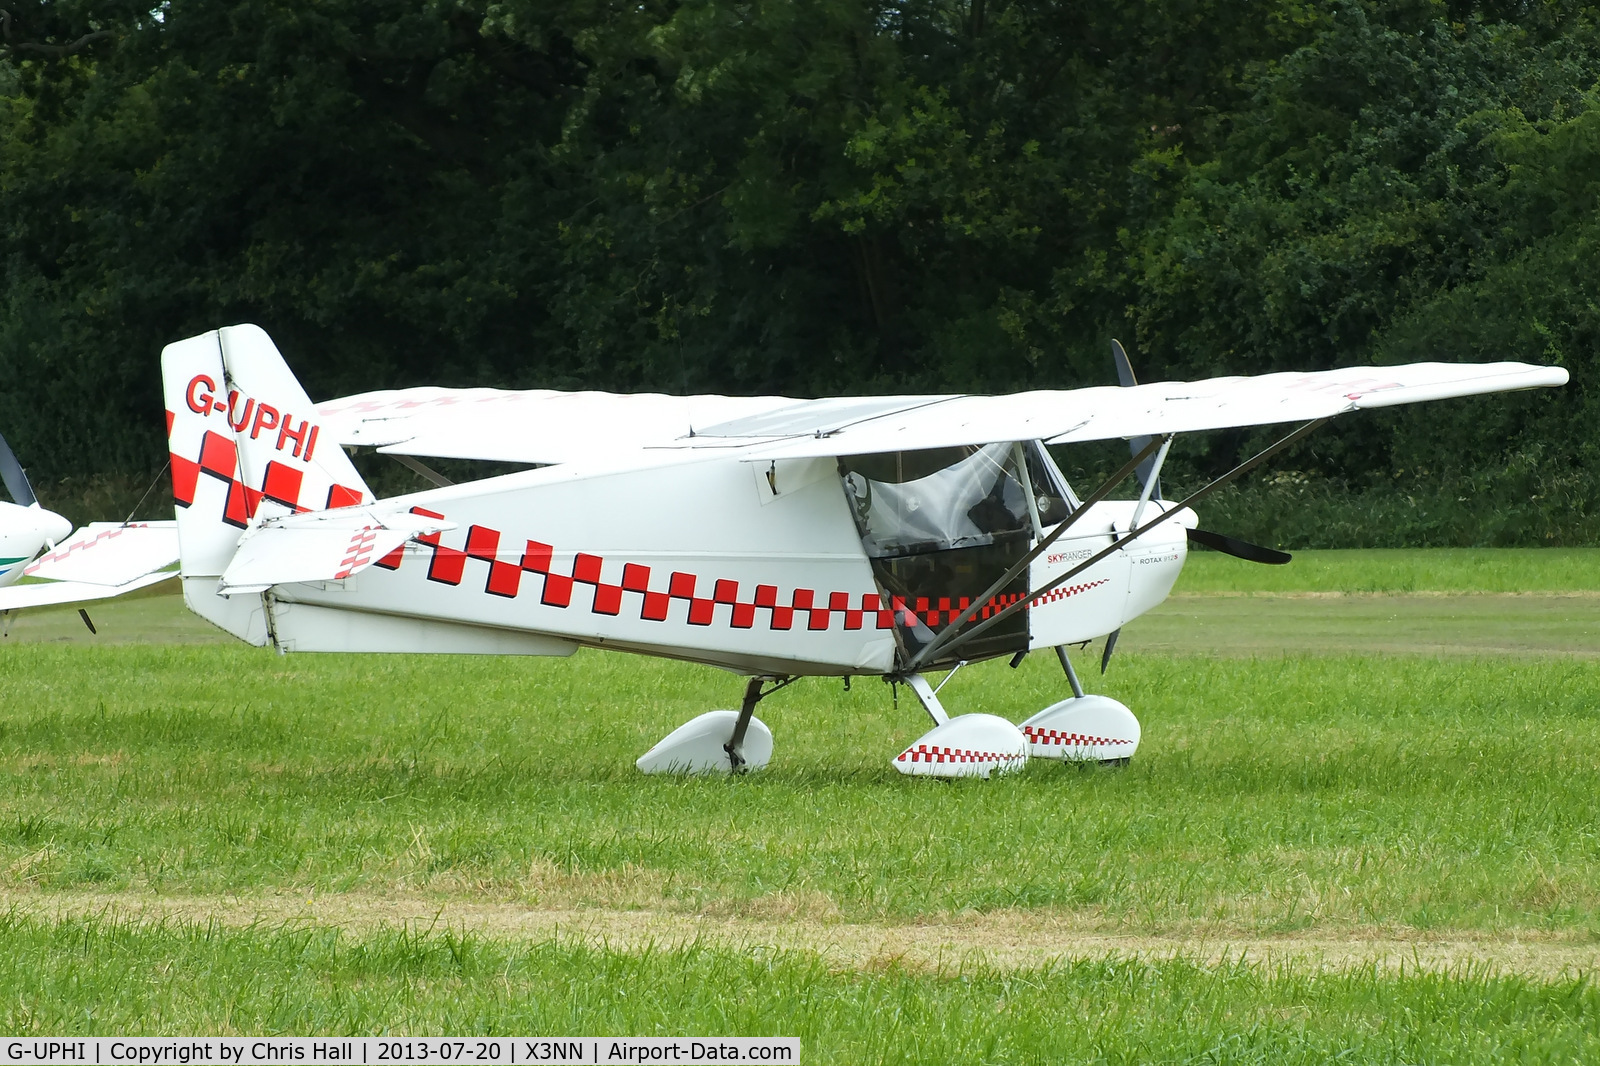 G-UPHI, 2006 Best Off Skyranger Swift 912S(1) C/N BMAA/HB/480, at the Stoke Golding stakeout 2013